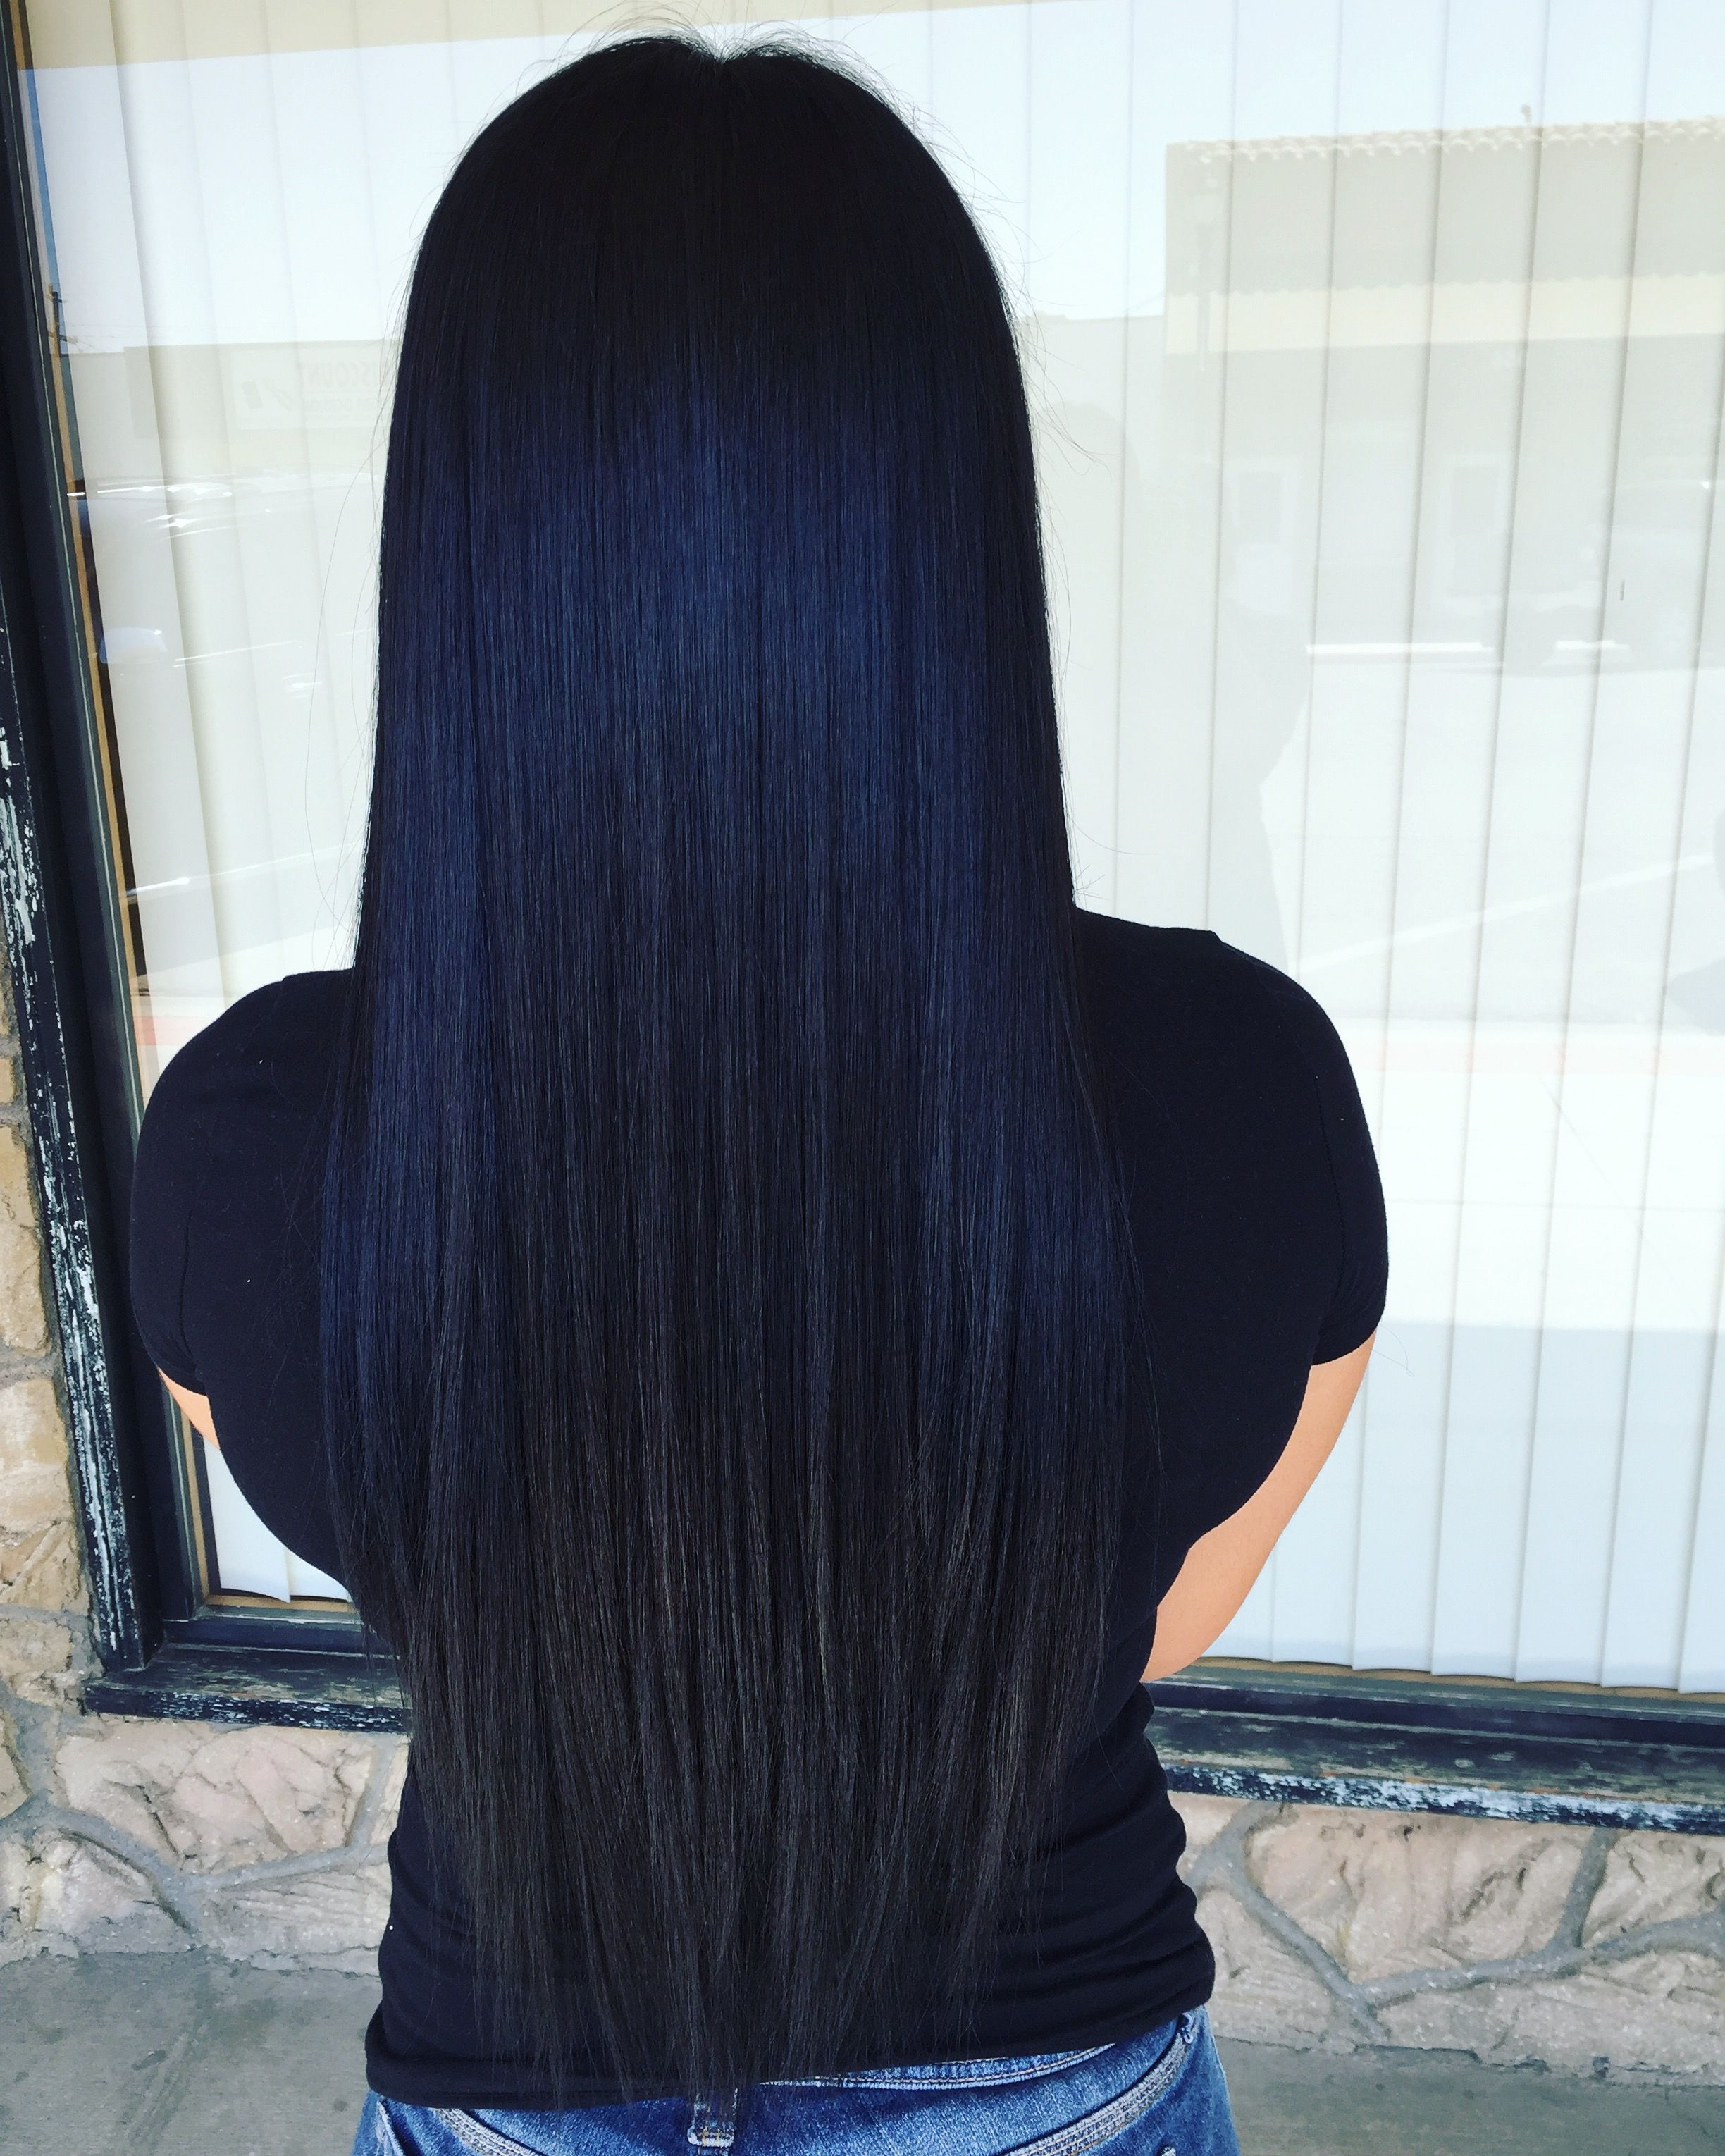 6 black hairstyle ideas you'd love | hair coloring, black and hair